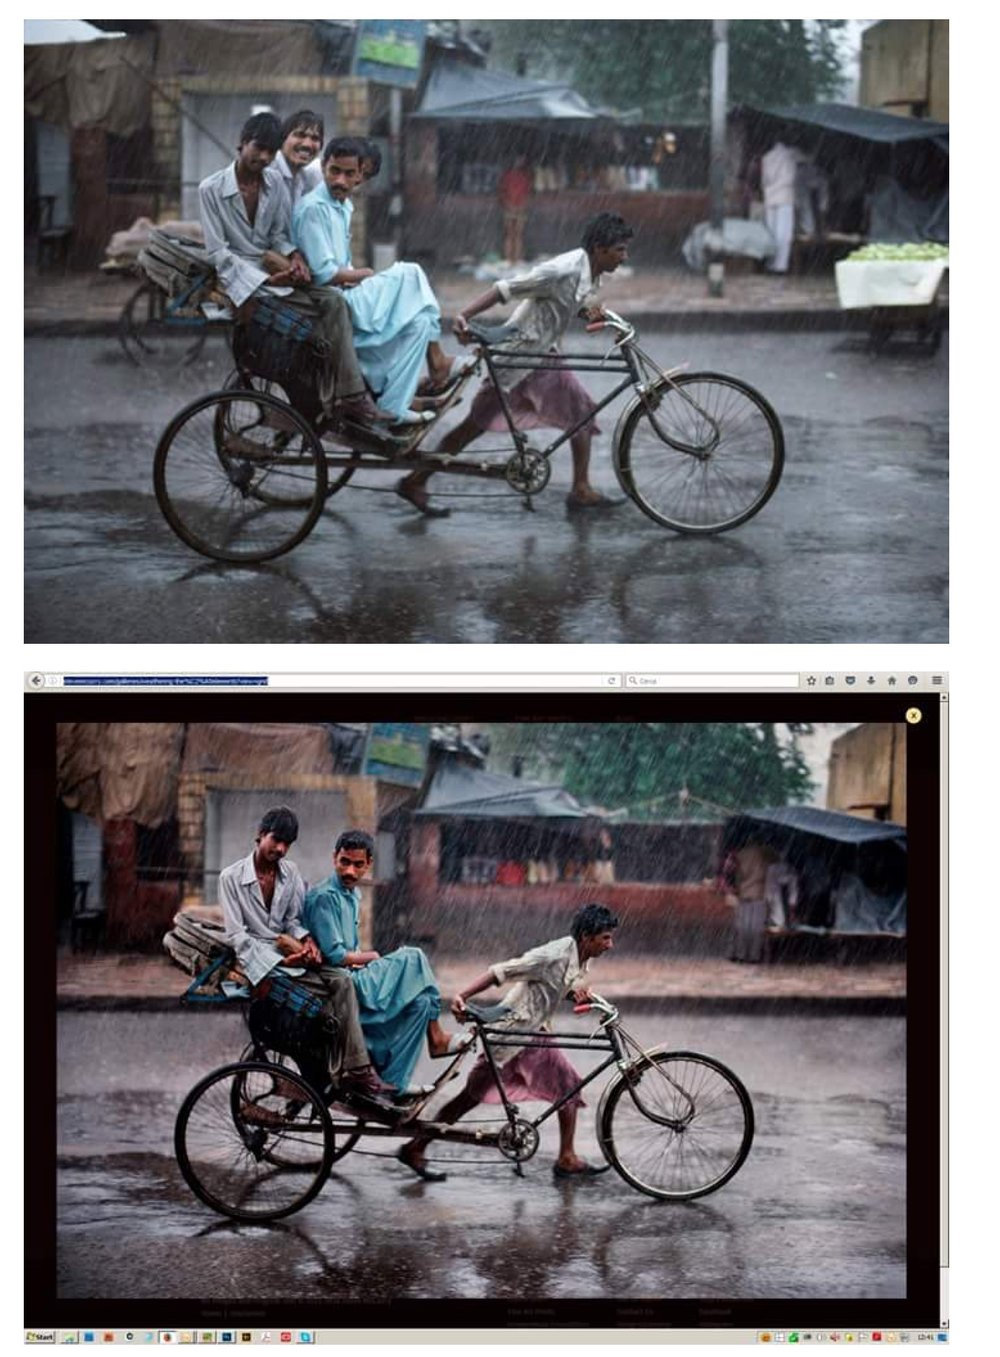 Photograph by Steve McCurry. Top image: Original, Below: Manipulated. Image source :https://aphotographicmind.net/2016/05/07/spot-the-differences/